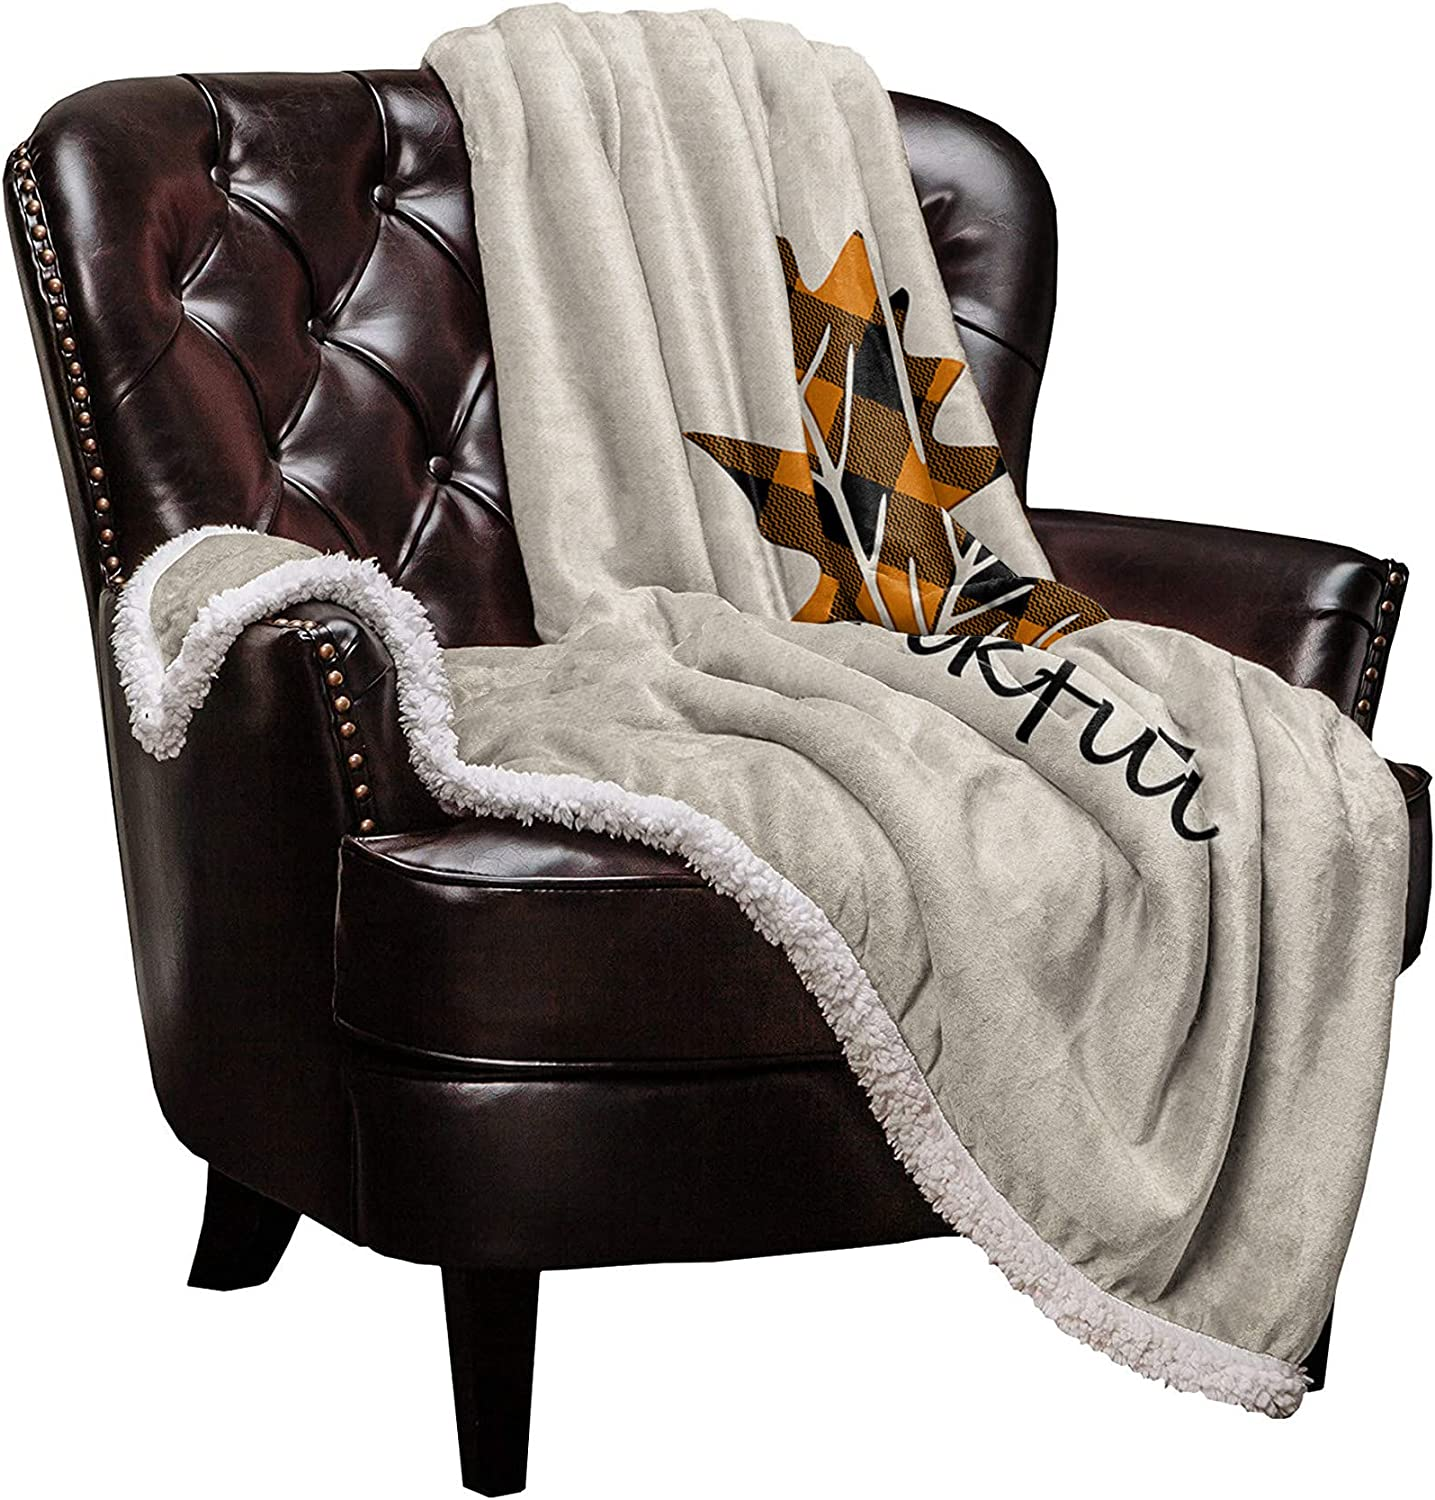 All stores are sold All items in the store DaringOne Maple Sherpa Fleece Blanket Throw Flannel Double-Side